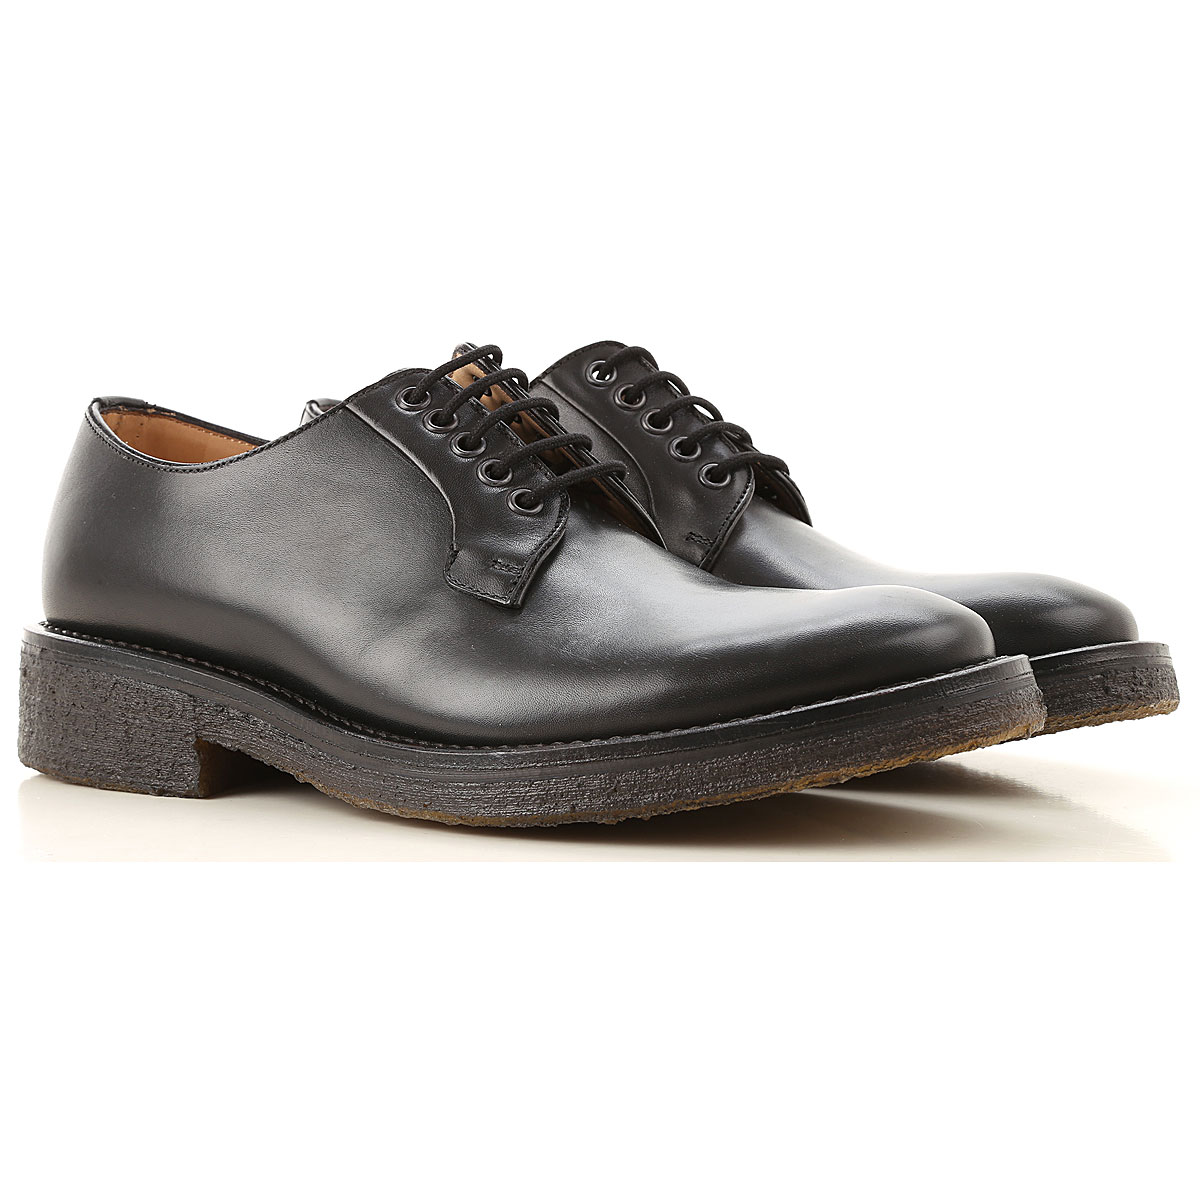 Seboys Lace Up Shoes for Men Oxfords, Derbies and Brogues On Sale, Black, Leather, 2019, 10 10.25 7 7.5 7.75 8 8.5 9.5